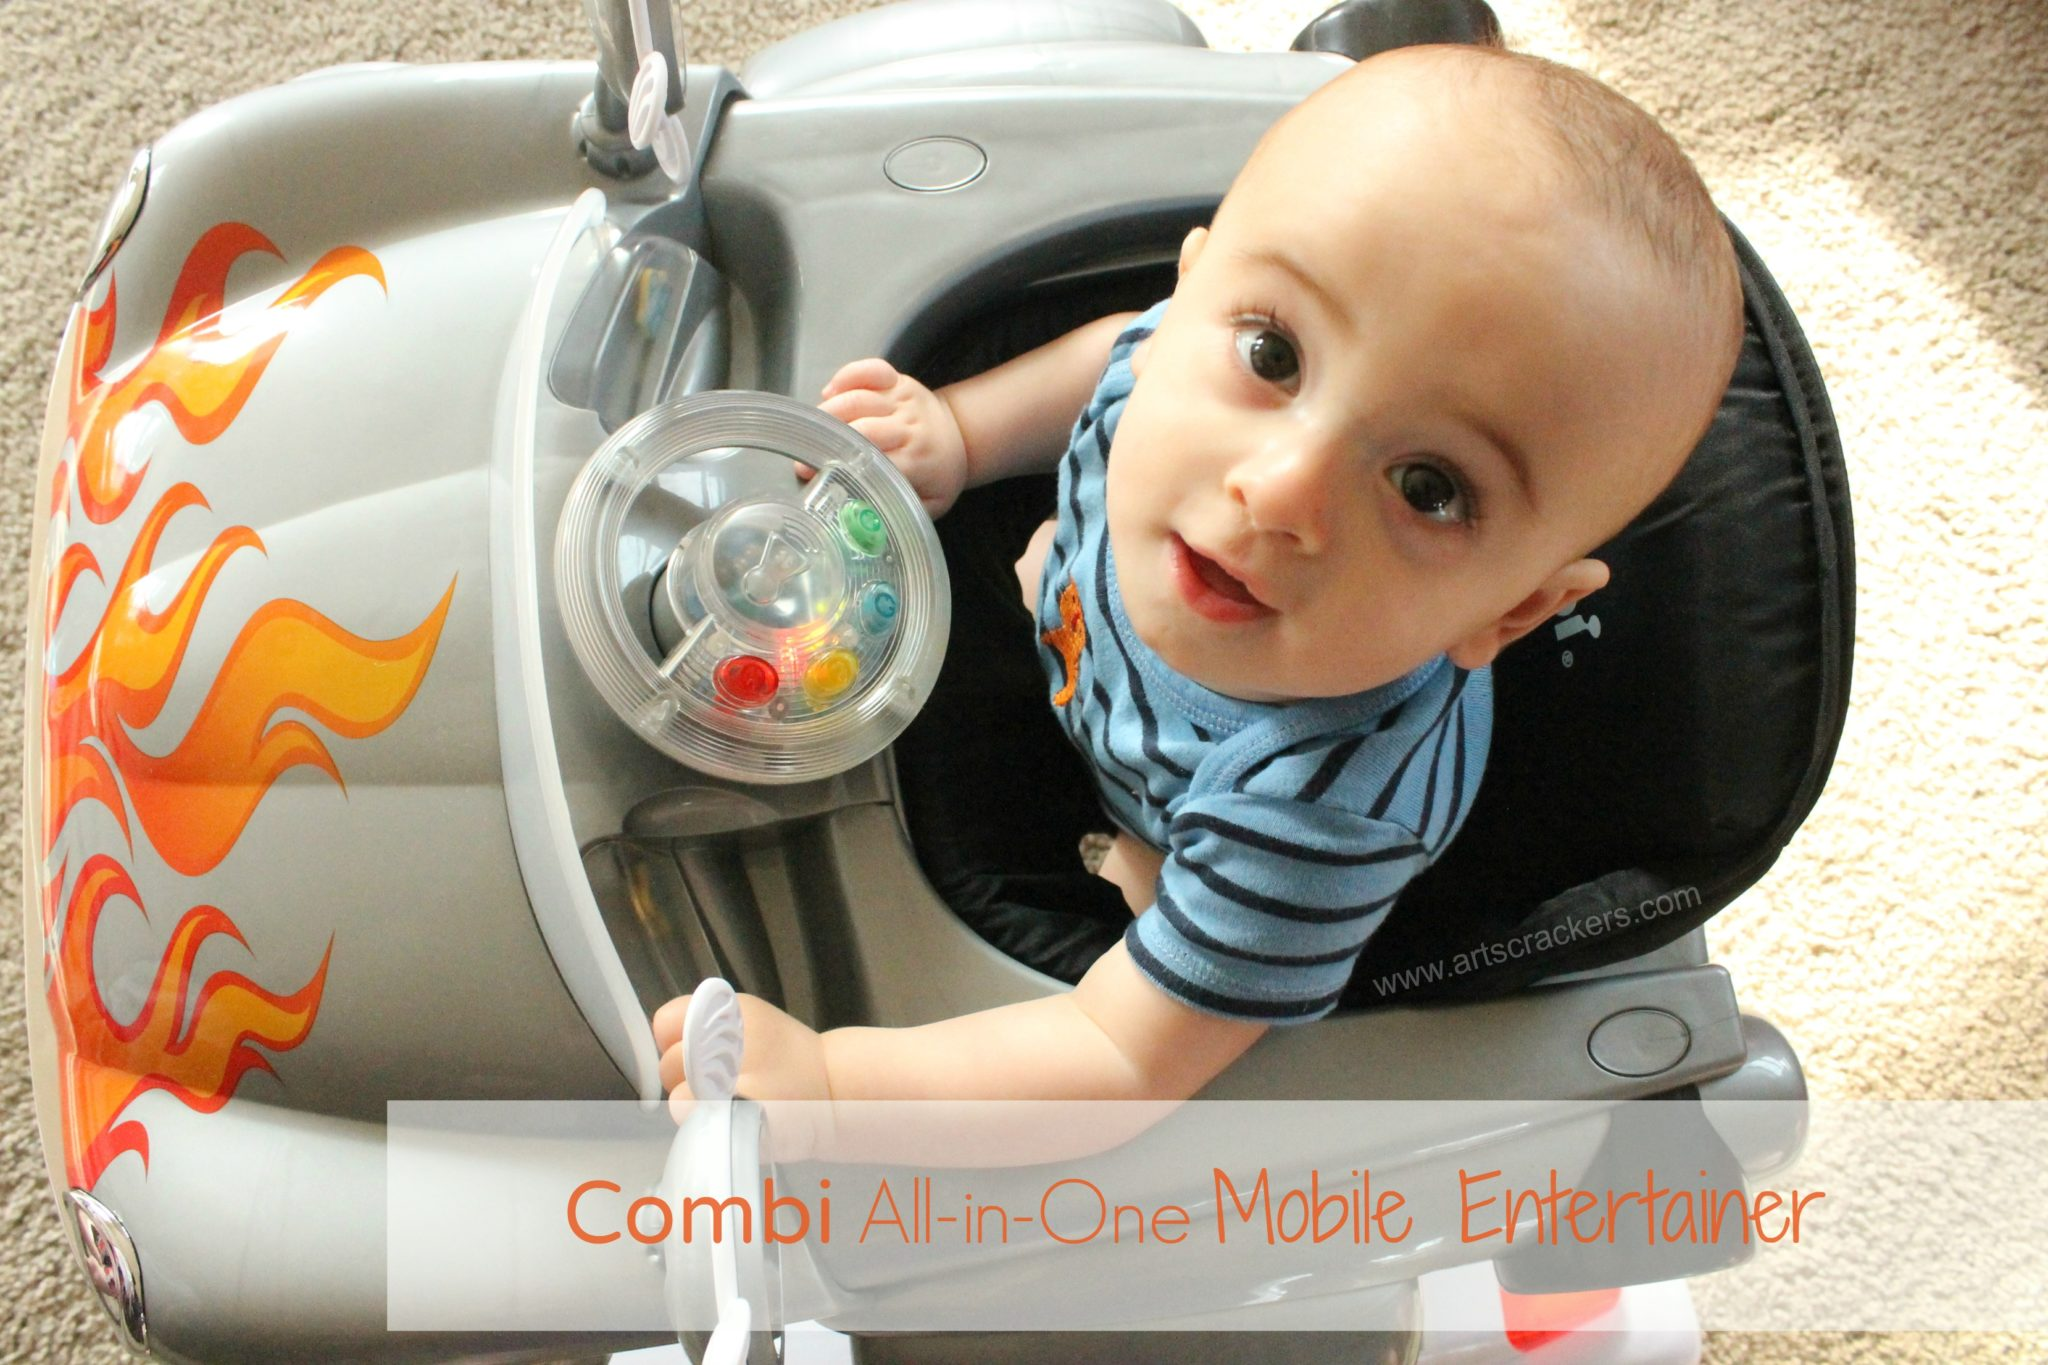 Combi All in One Mobile Entertainer